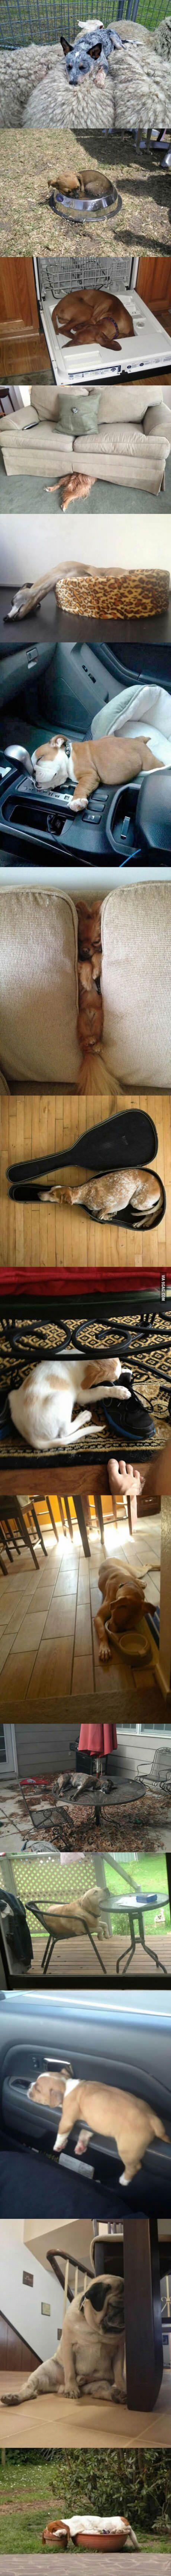 15 photos that prove dogs can  asleep anywhere. http://lolsalot.com/15-photos-that-prove-dogs-can-fell-asleep-anywhere/ #Funny #Pic